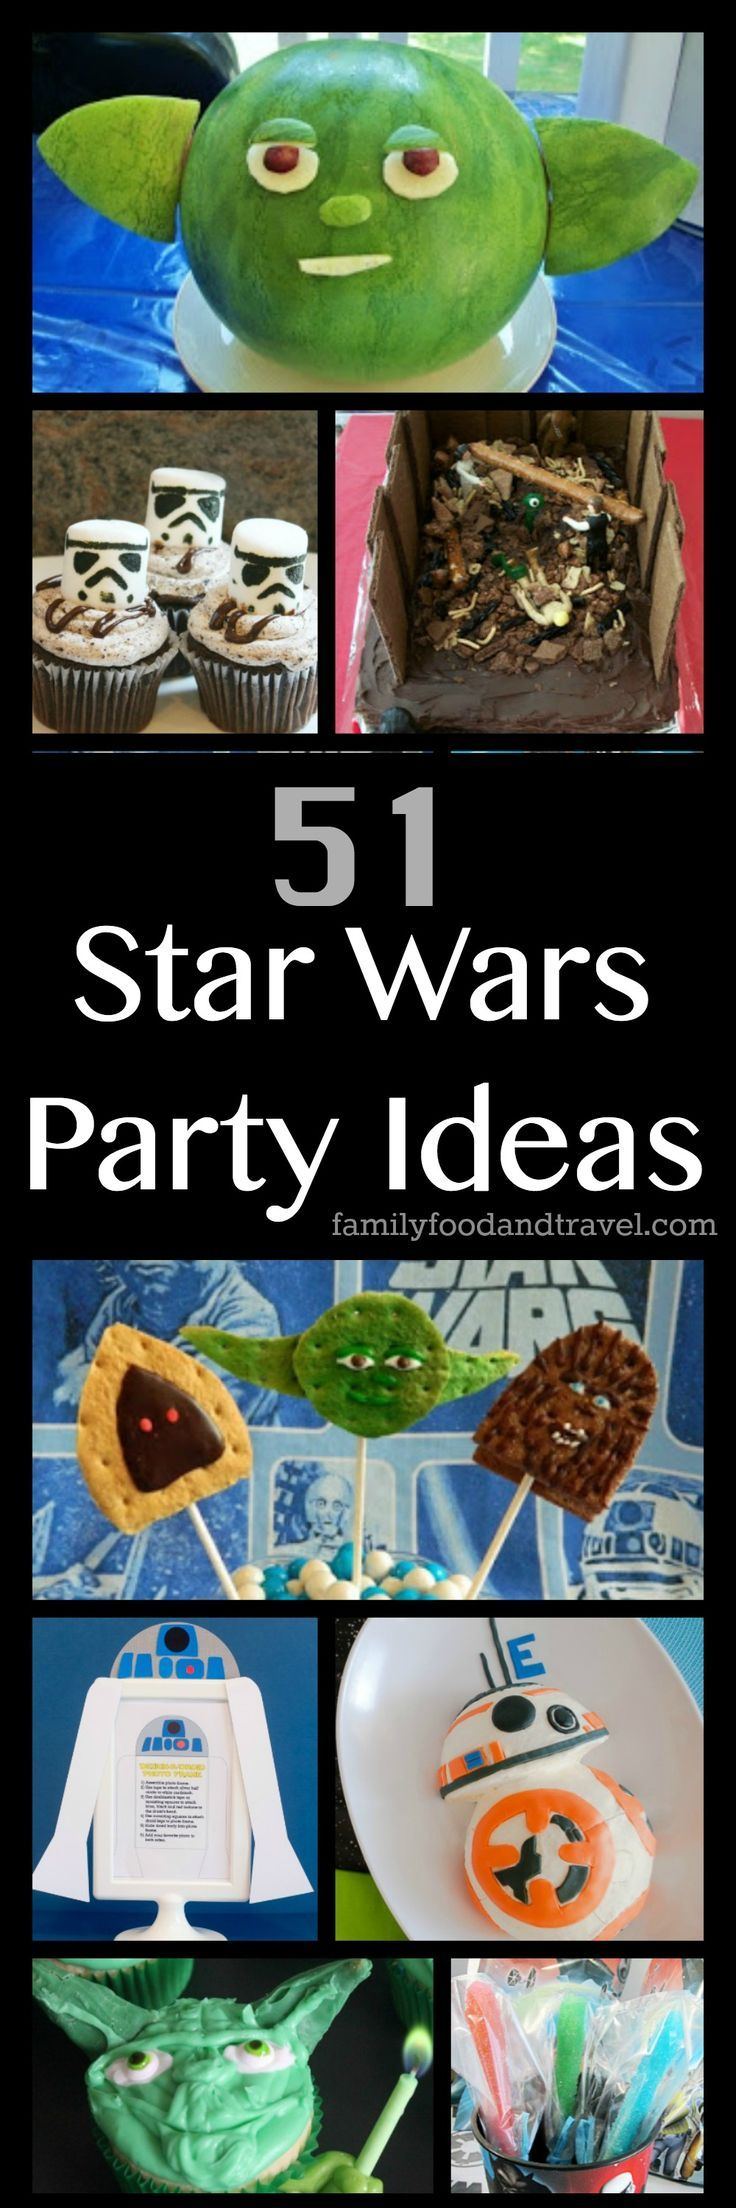 51 Stellar Star Wars Party Ideas